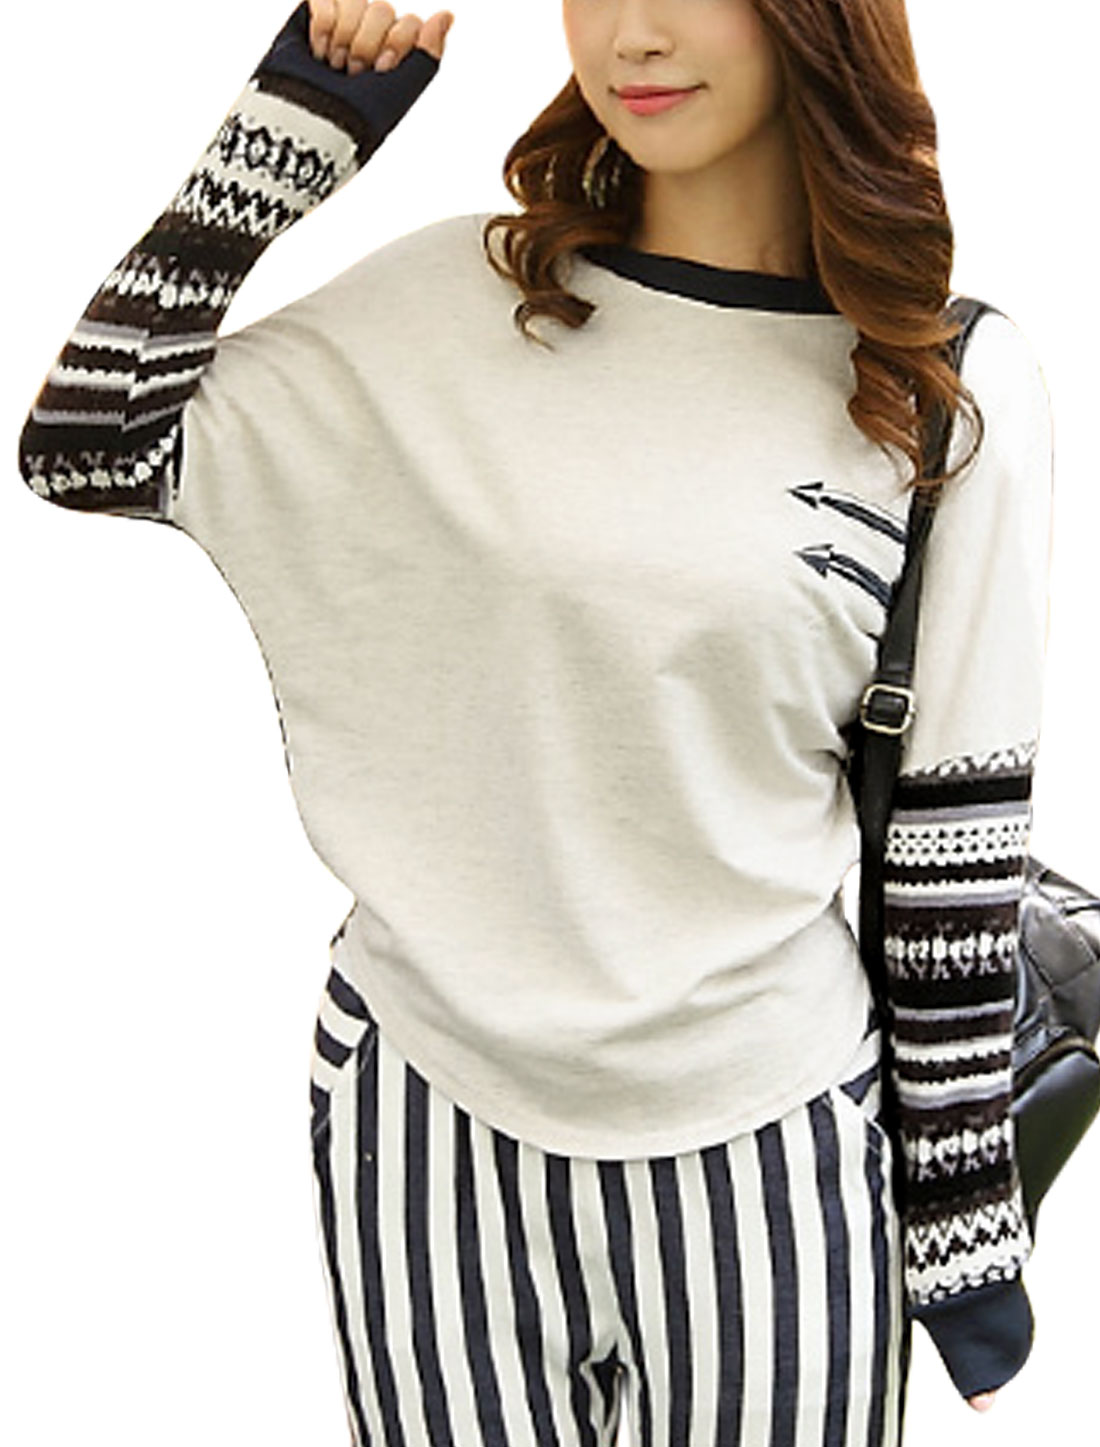 Women Beige Round Neck Bat Sleeves Knitting Splicing Casual Top M